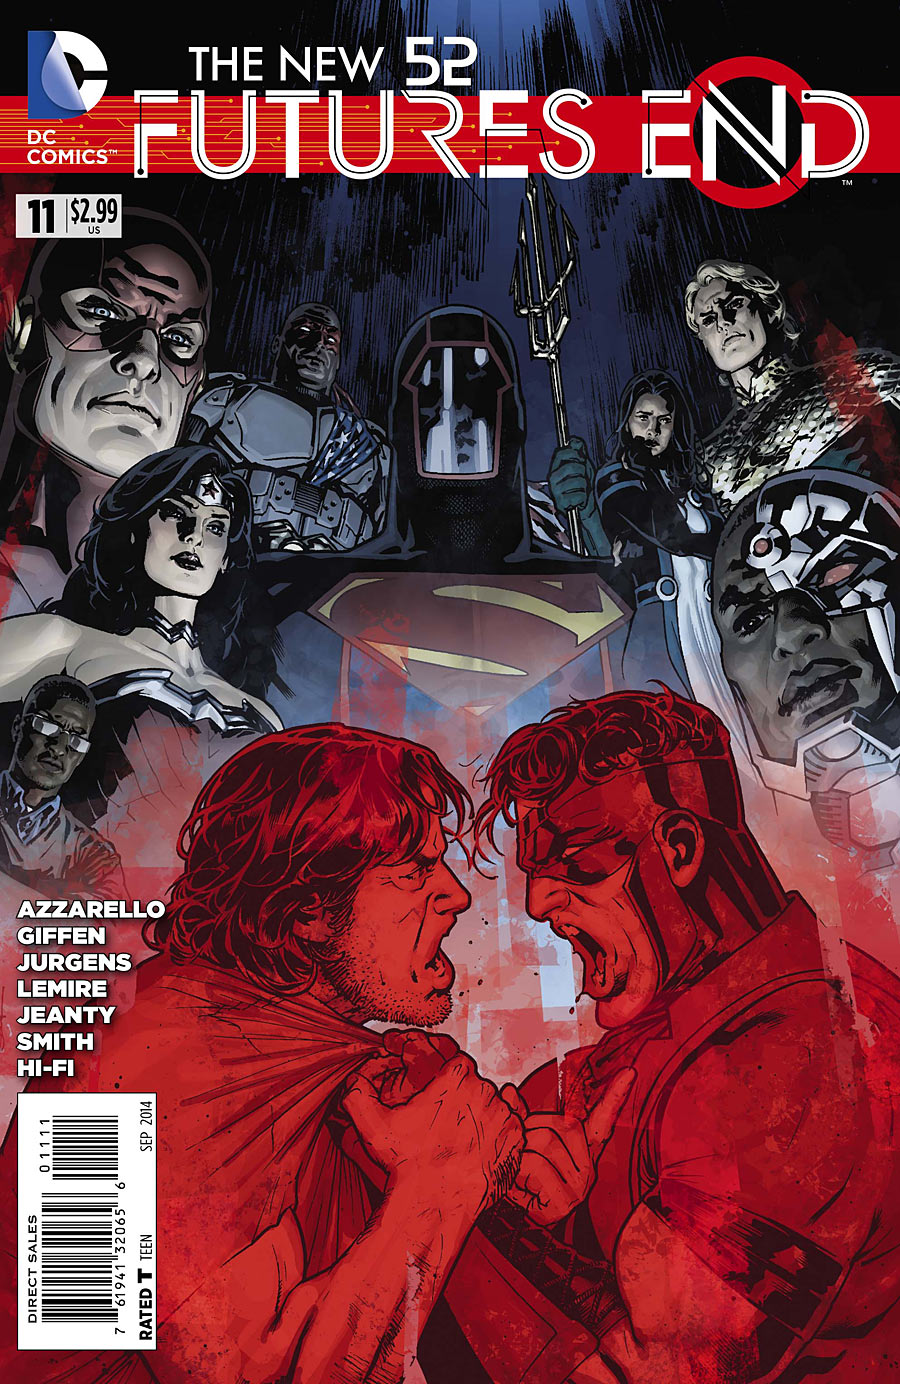 The New 52: Futures End Vol.1 #11